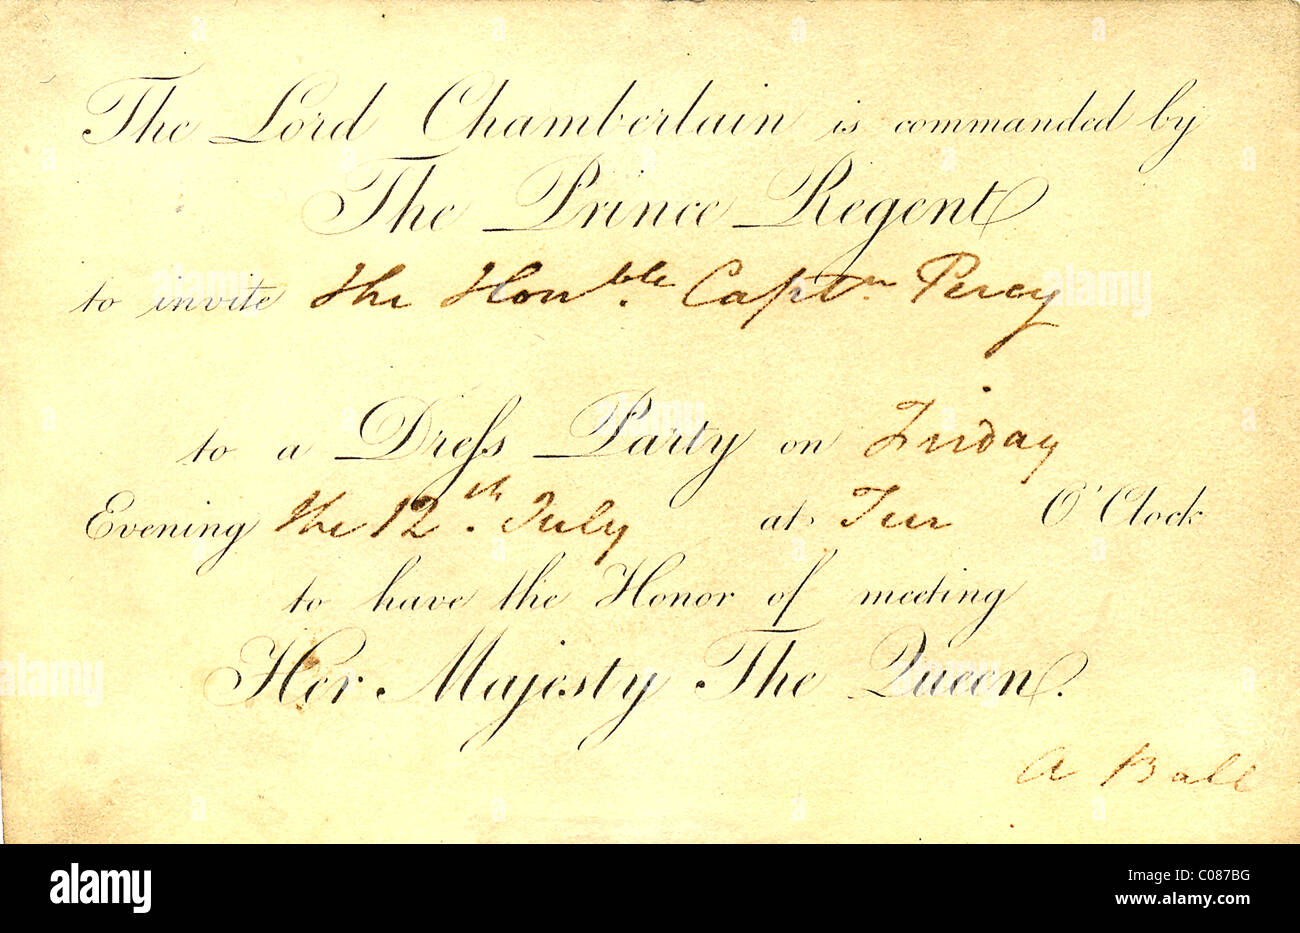 Invitation from the Prince Regent to a ball - Stock Image